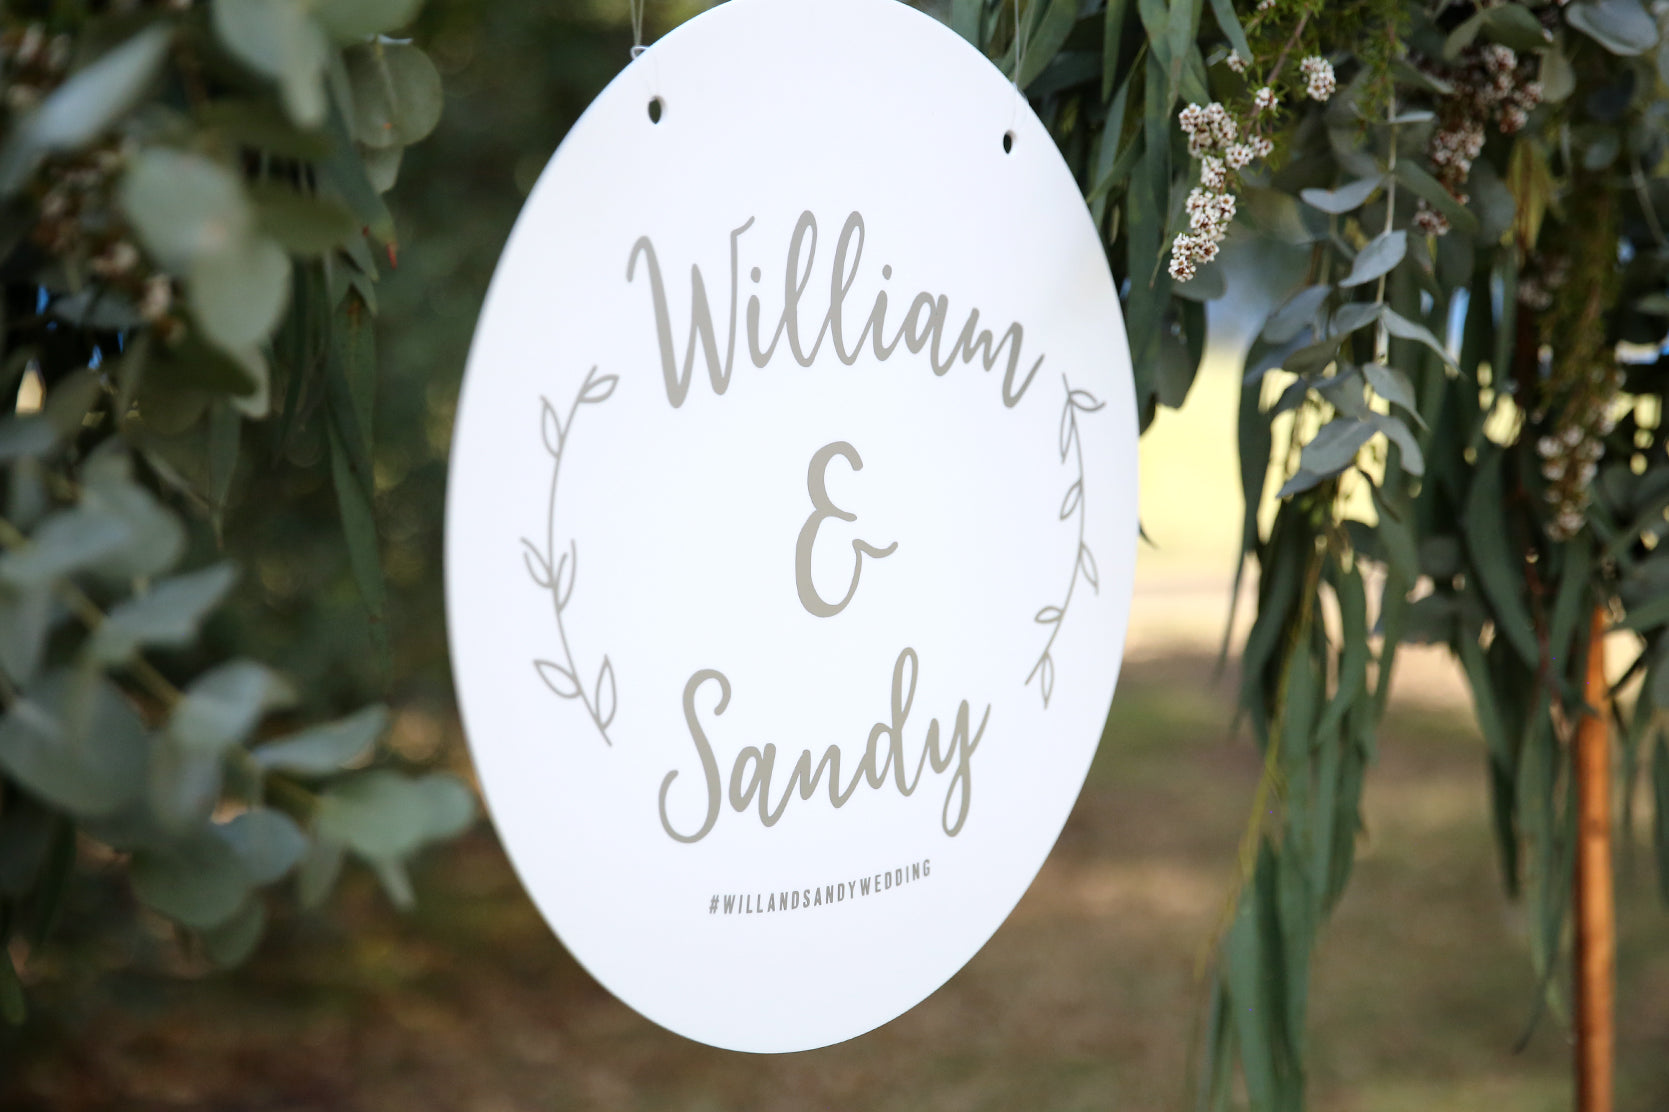 White and silver boho style hanging wedding sign